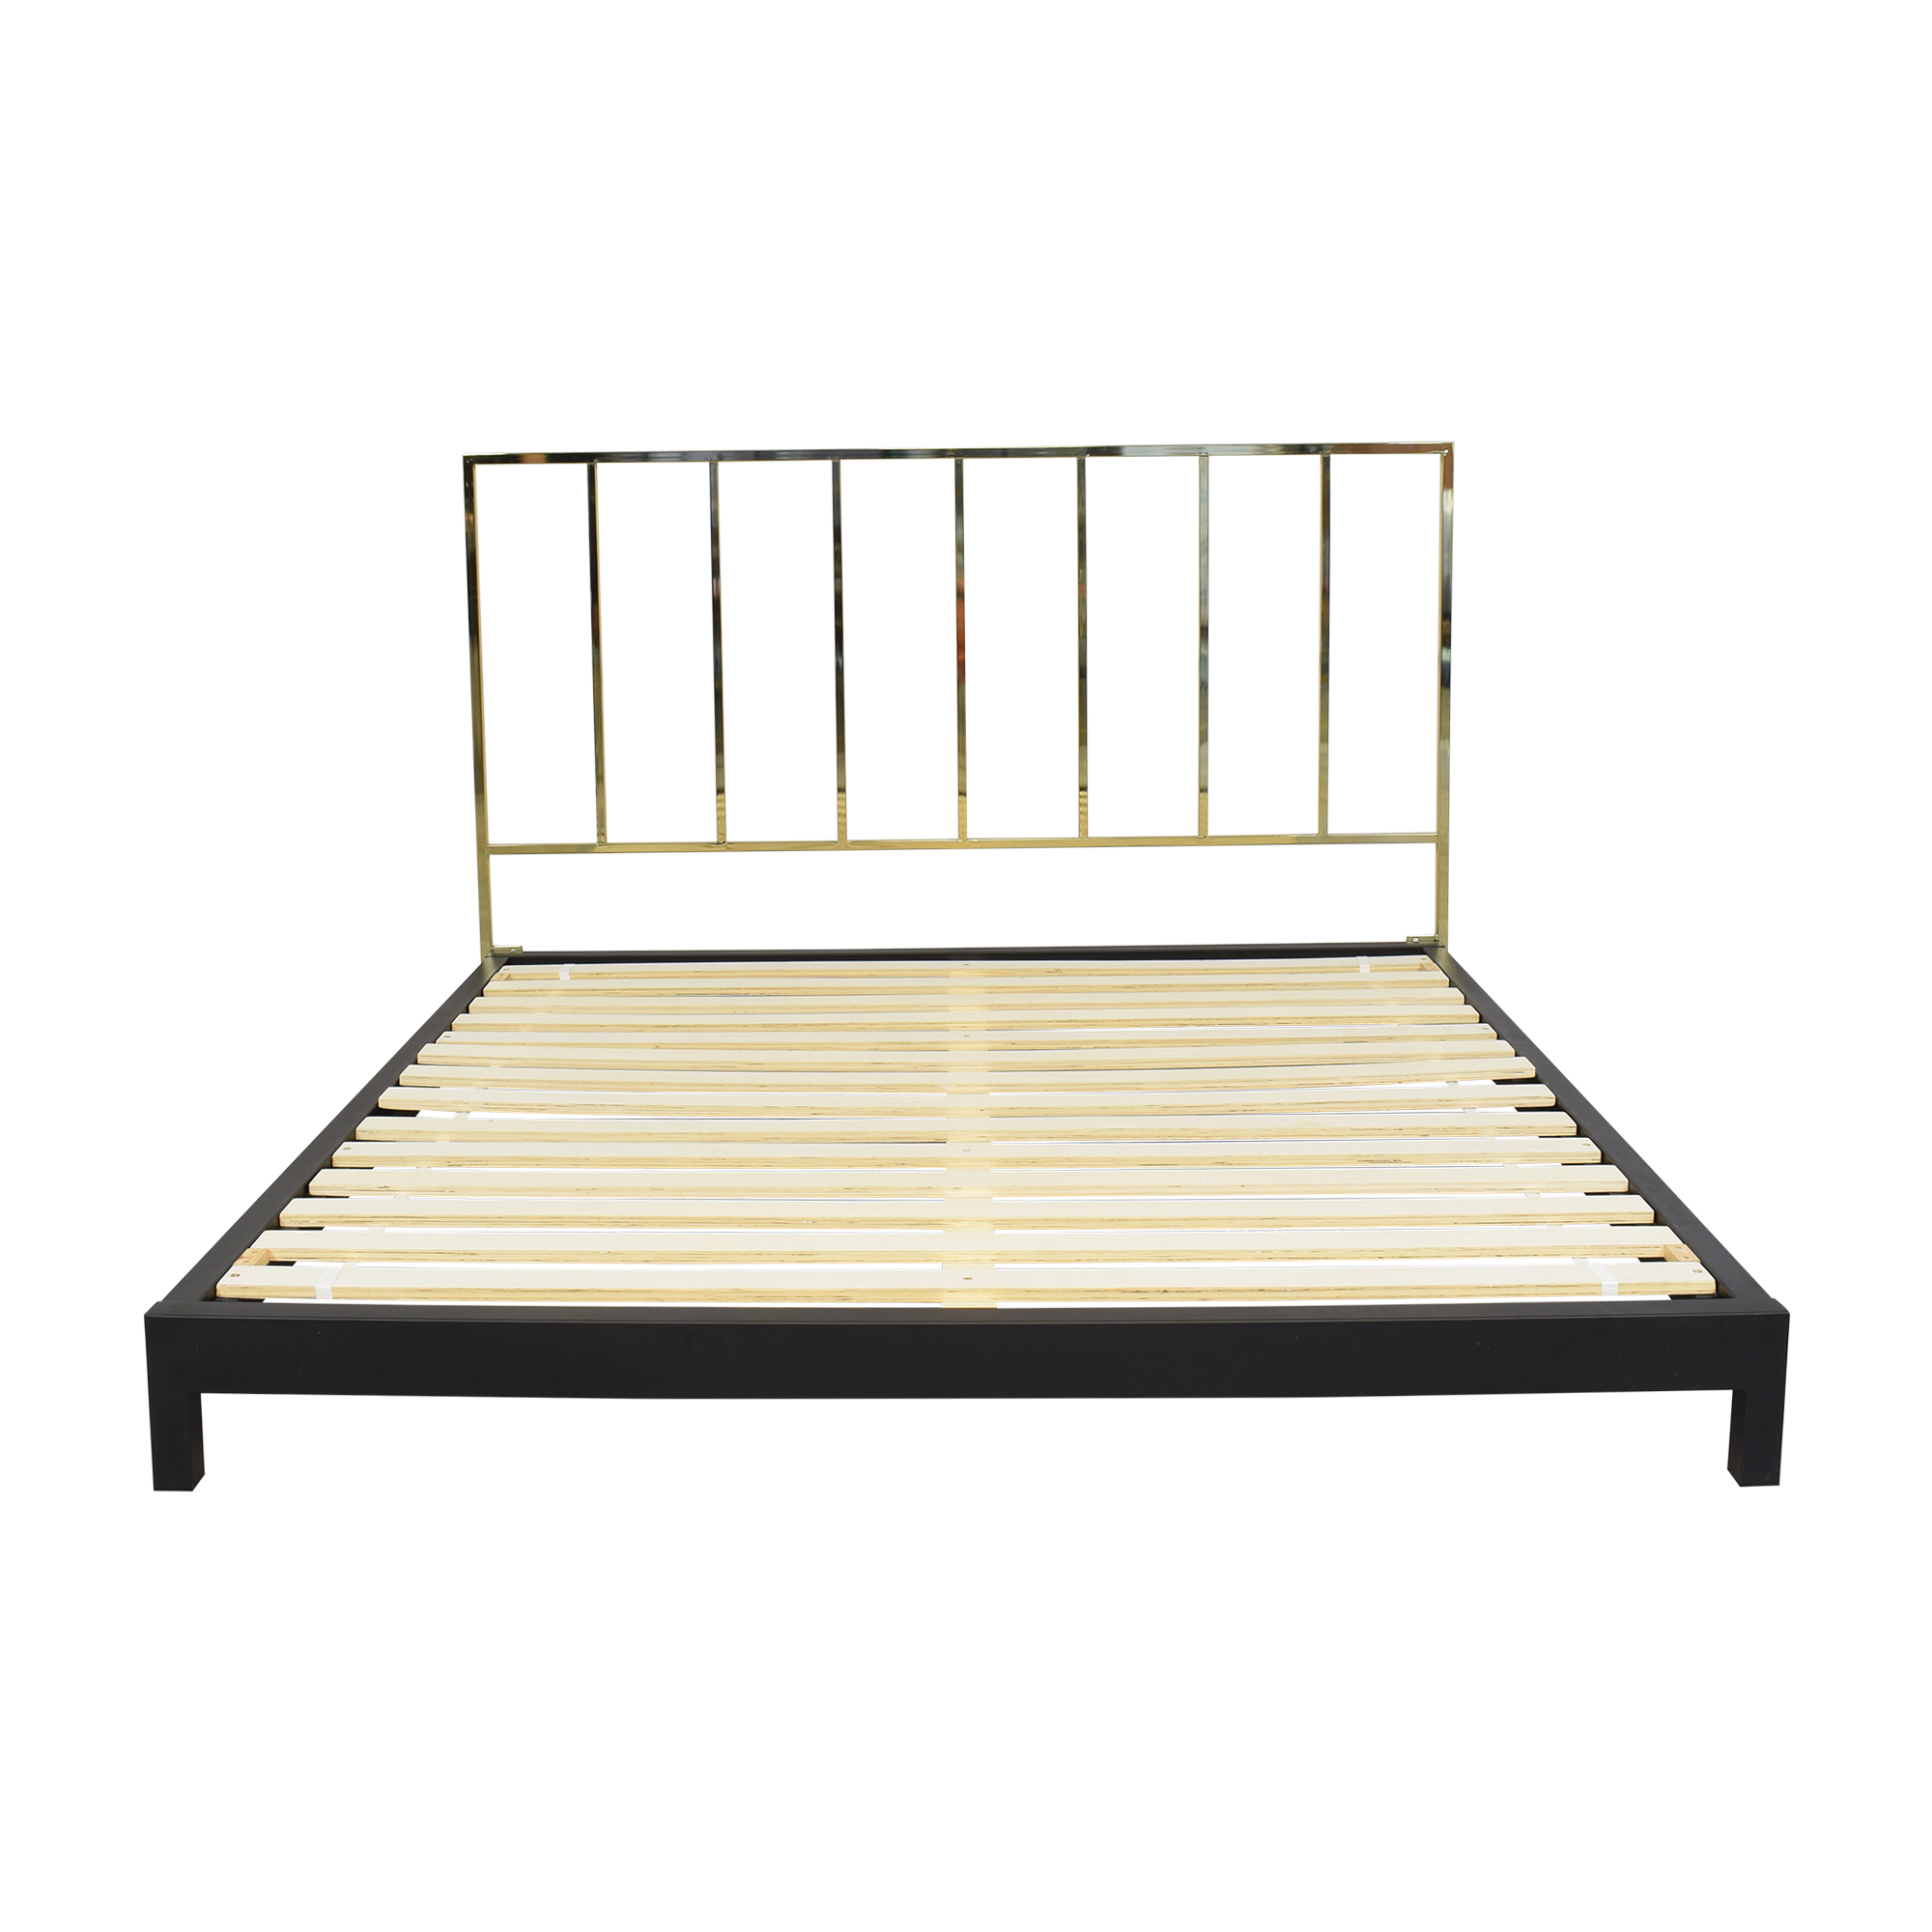 CB2 Alchemy Tall Headboard King Bed sale